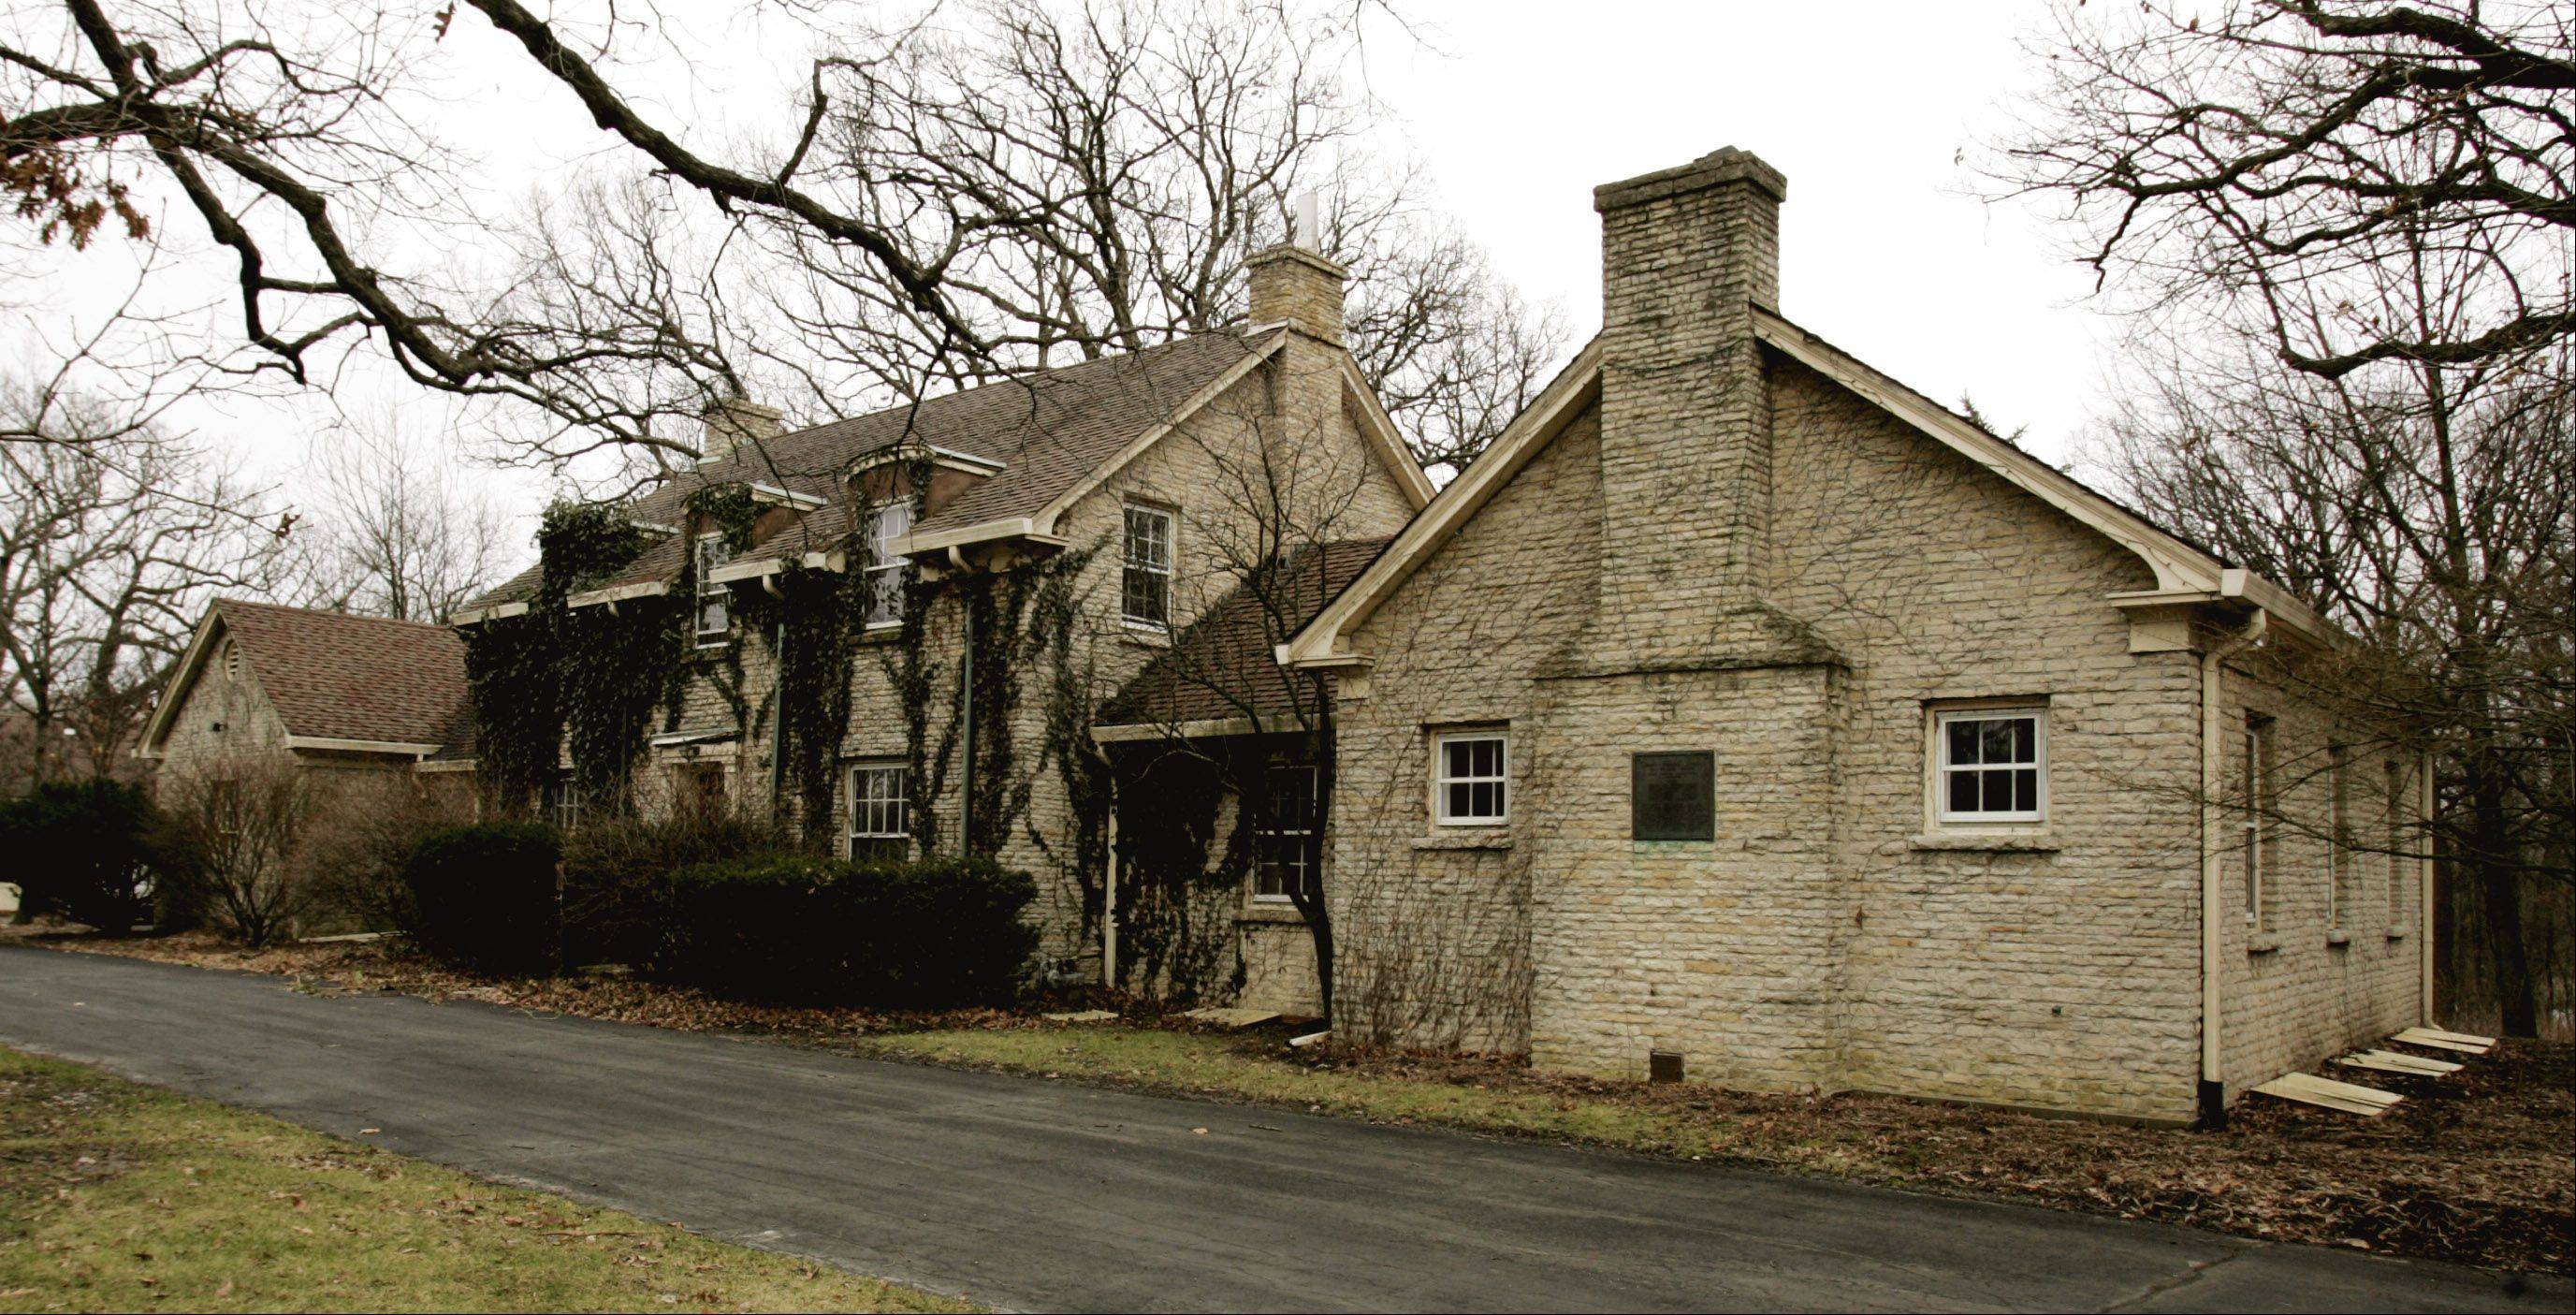 The DuPage Forest Preserve Commission might hire an architectural firm specializing in historic renovation to do a study of the McKee House, which is located at Churchill Woods Forest Preserve near Glen Ellyn.